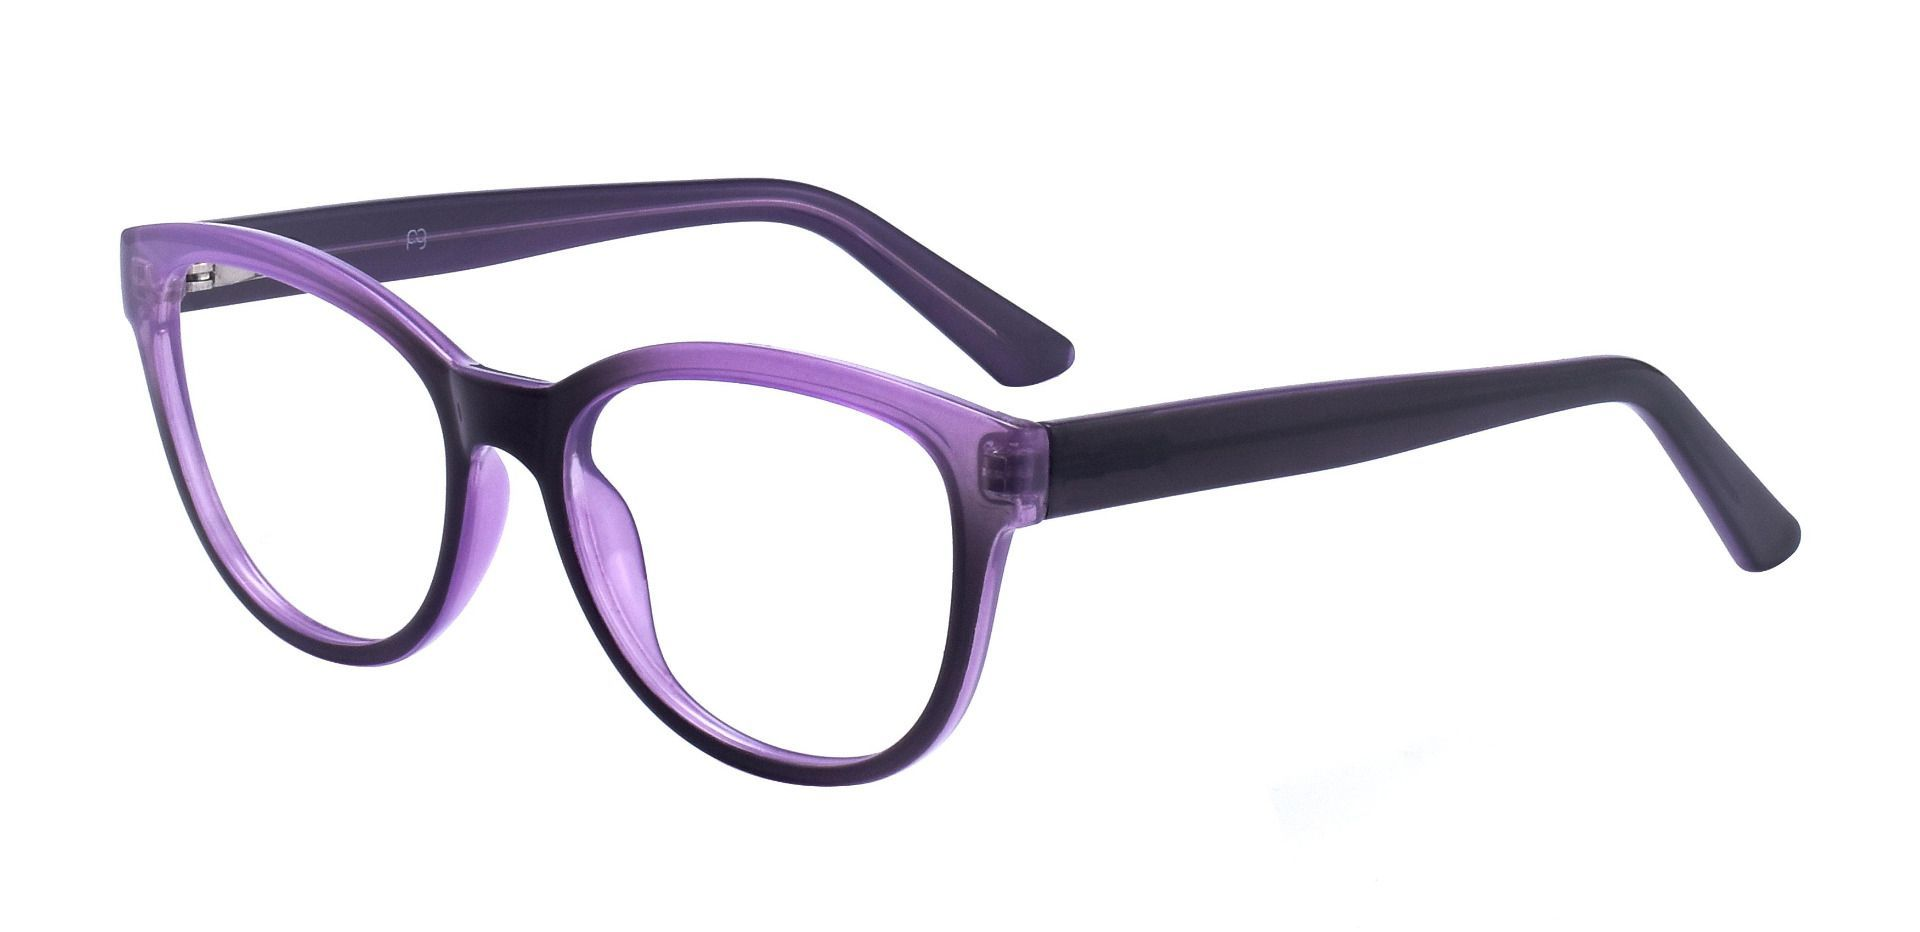 Primrose Oval Prescription Glasses - Purple